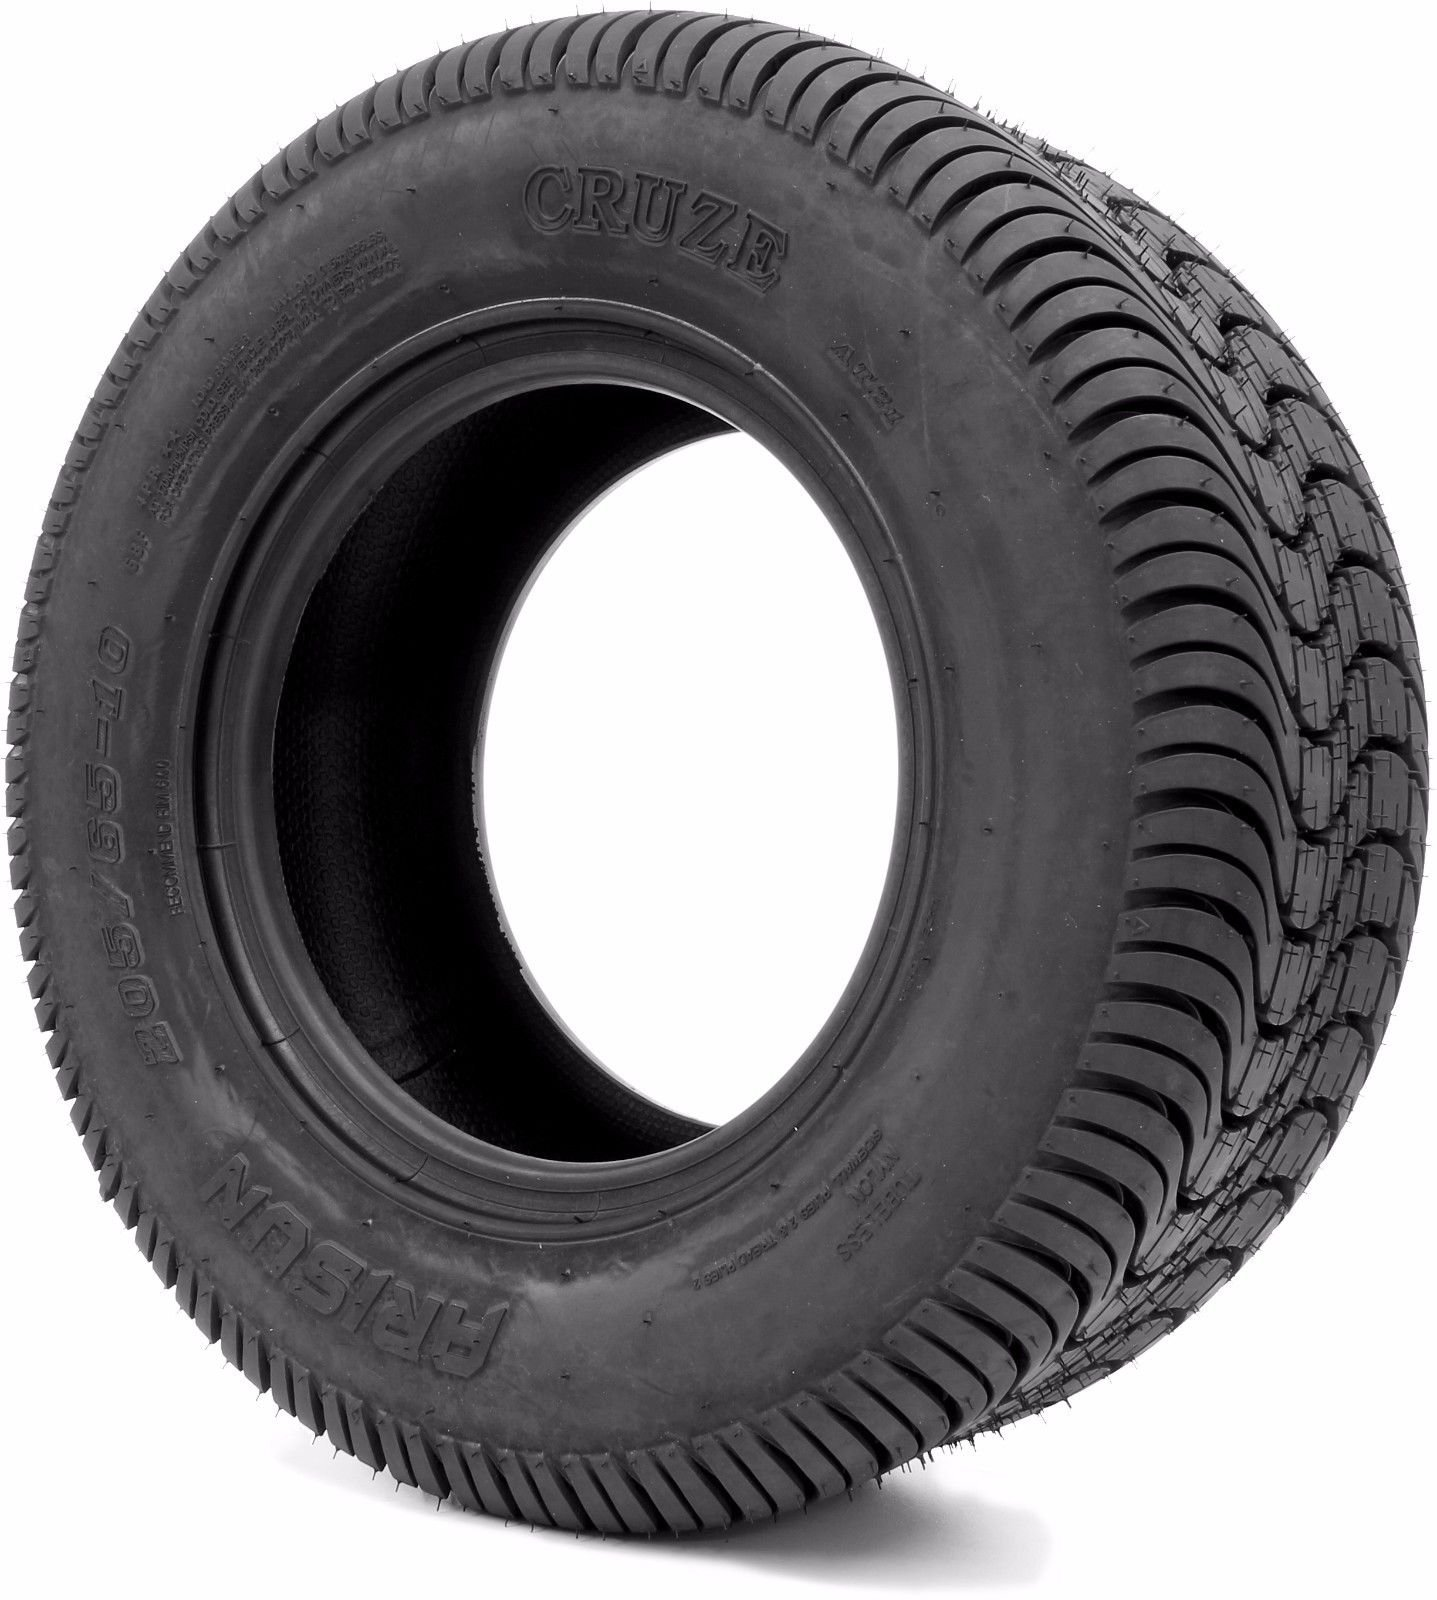 Arisun 205/65-10 DOT Street Tires for EZGO, Club Car, Yamaha Golf Carts (205/65-10, 1 Individual Tire)